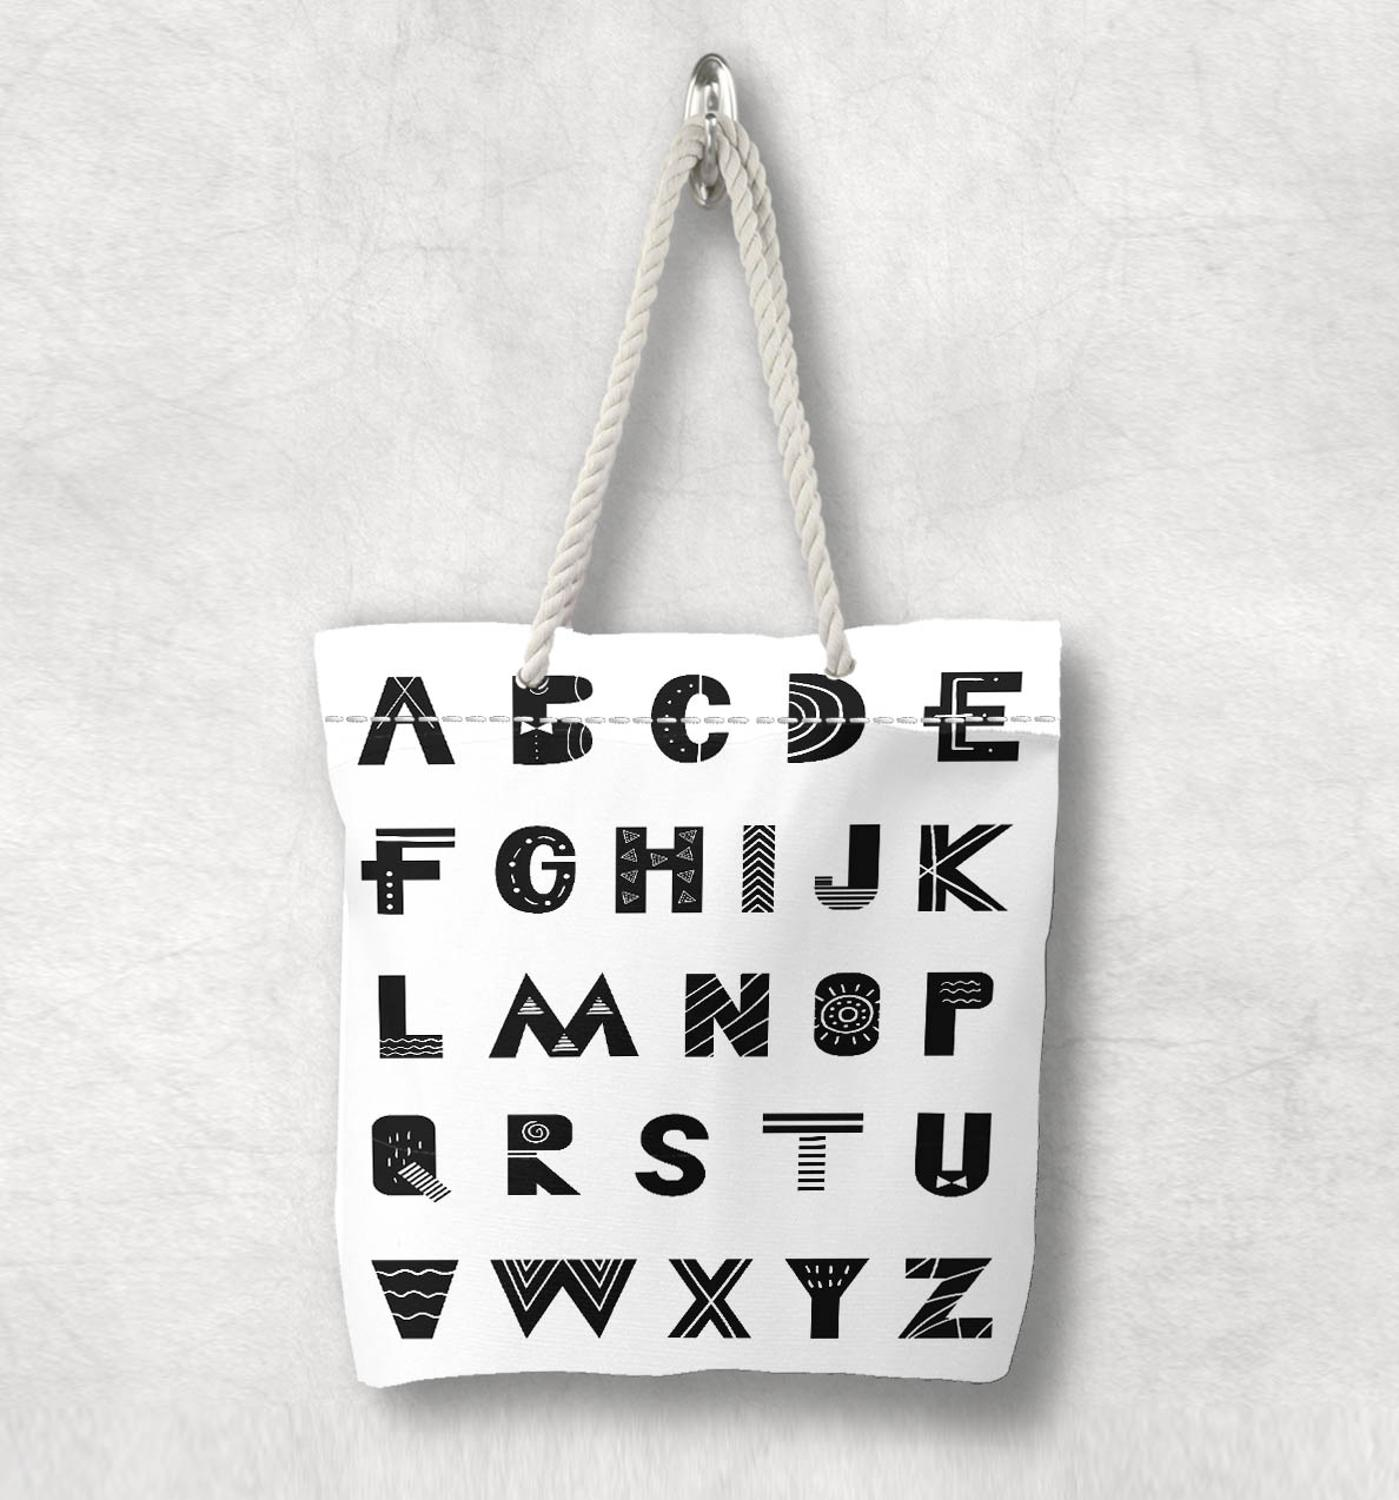 Else Black White Educational Alphabet Letter Nordic White Rope Handle Canvas Bag  Cartoon Print Zippered Tote Bag Shoulder Bag